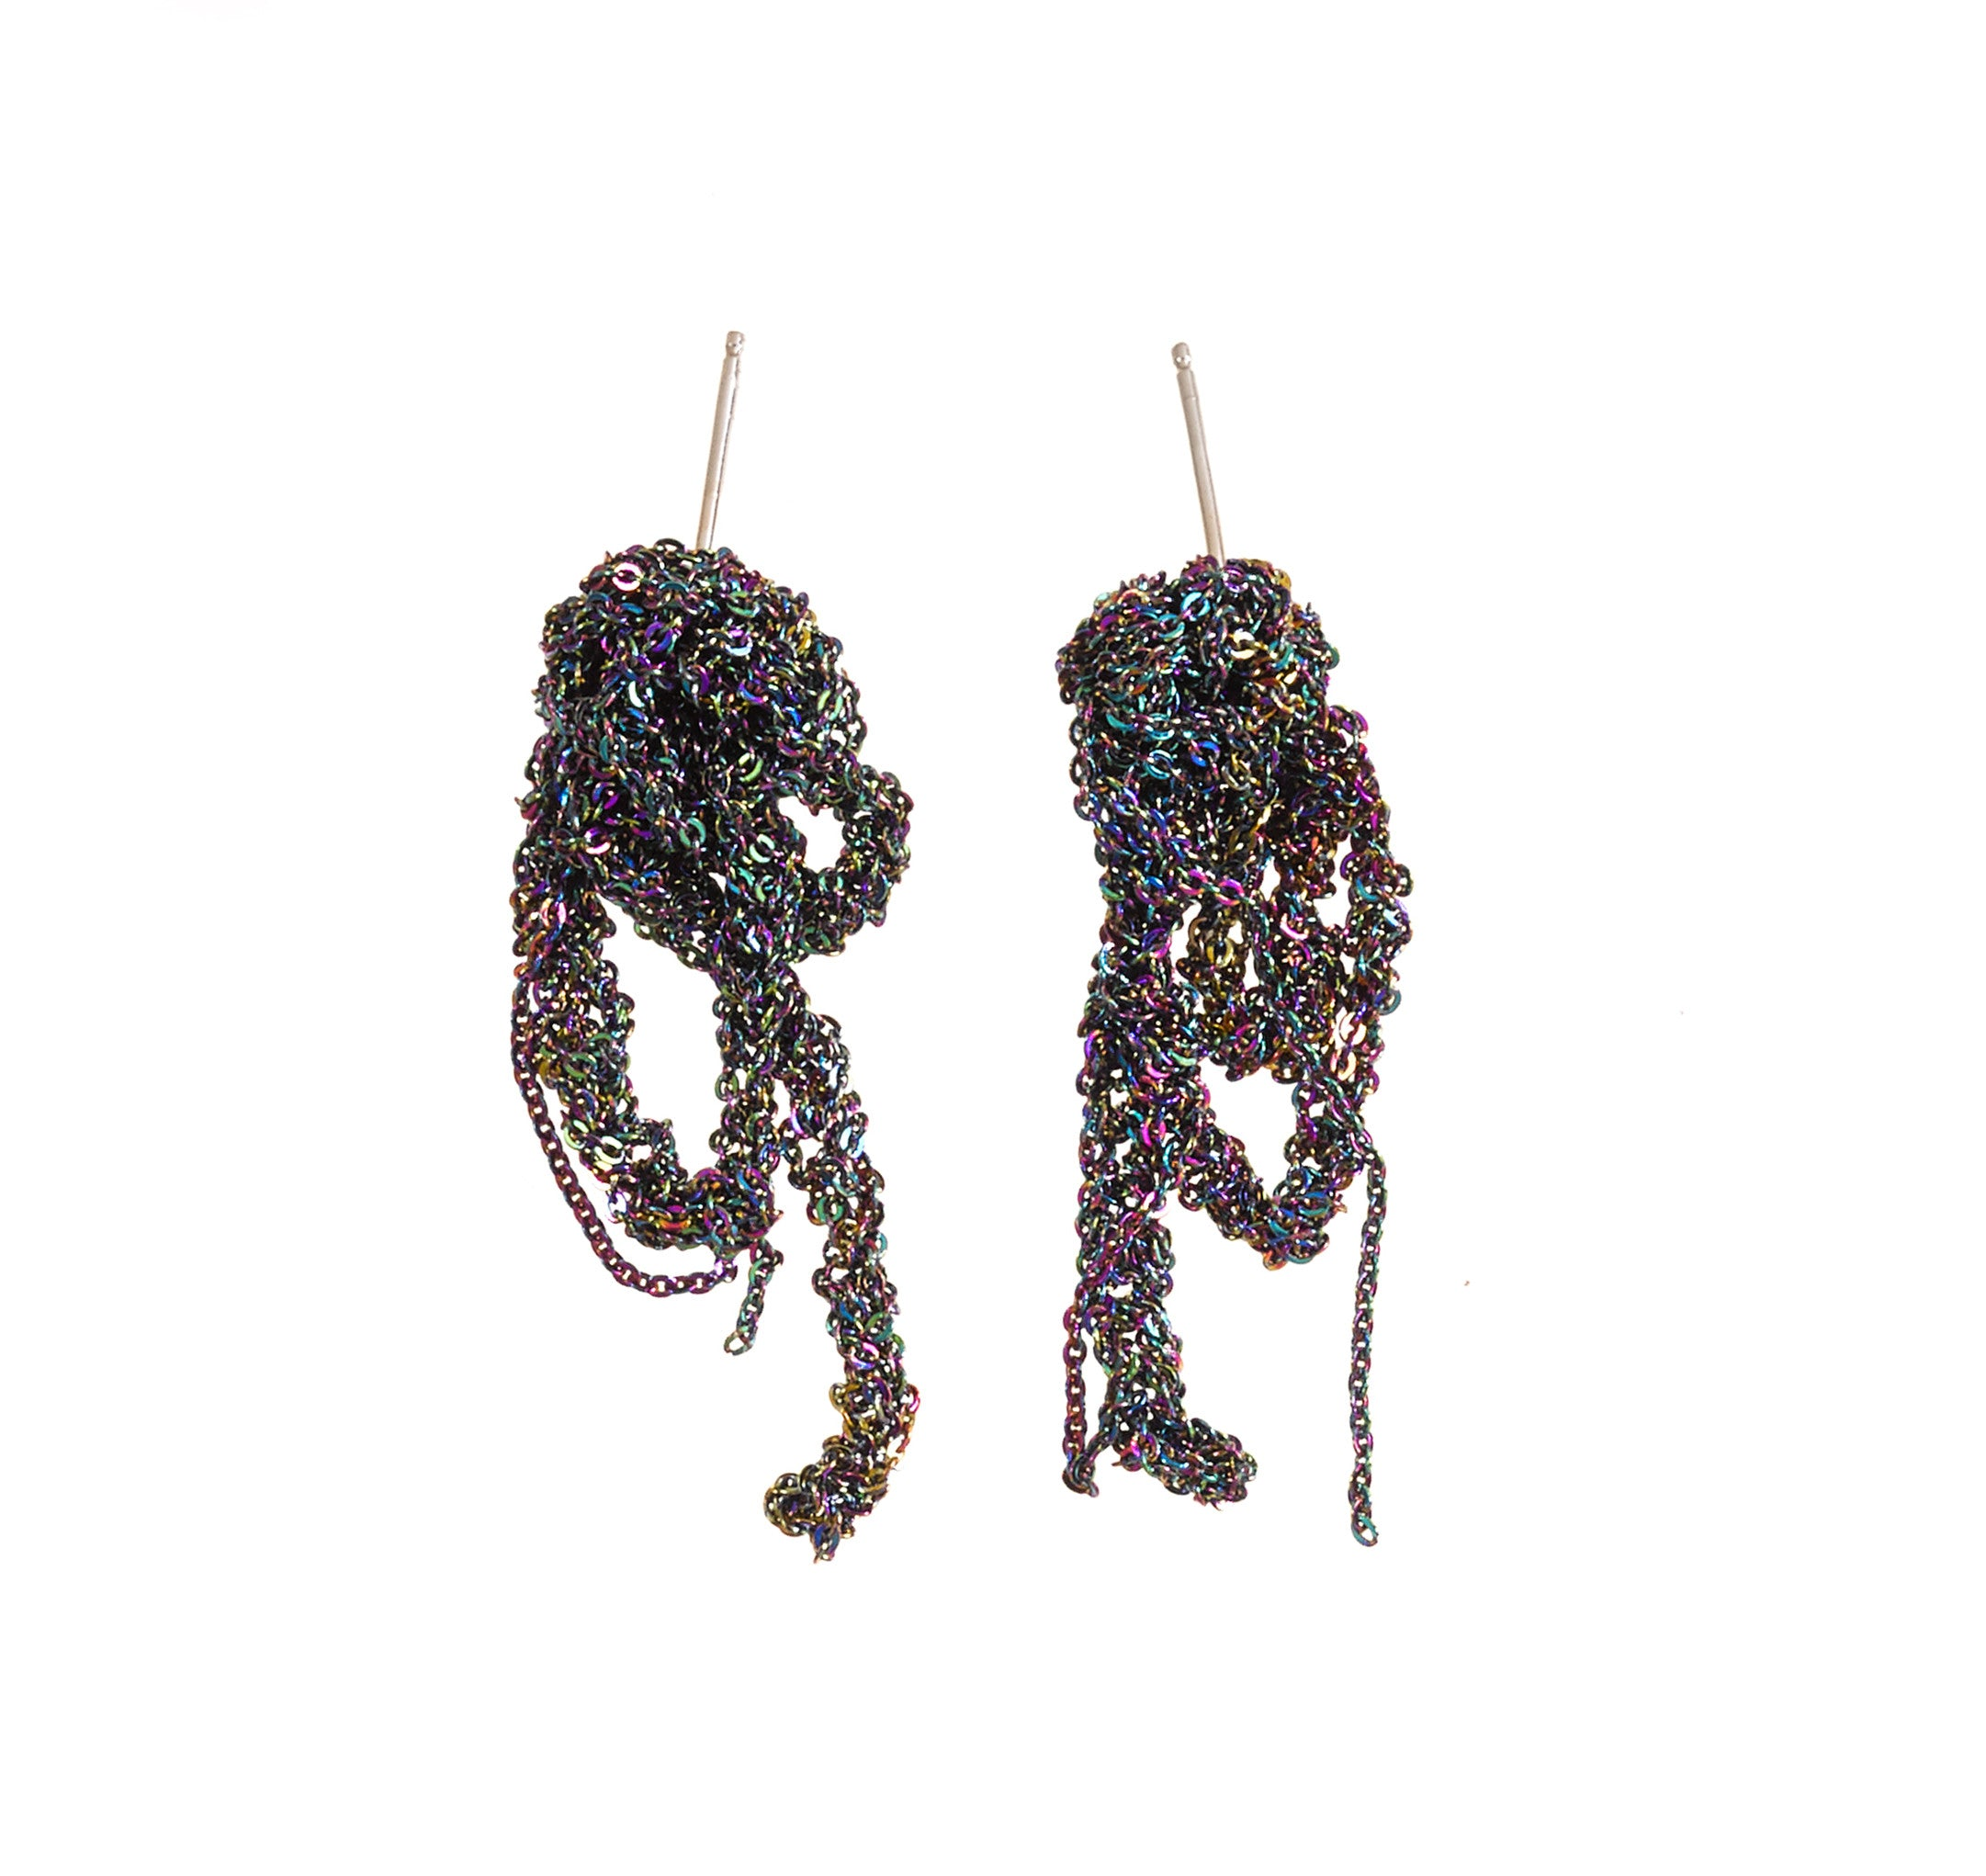 Drip Earrings in Spectrum